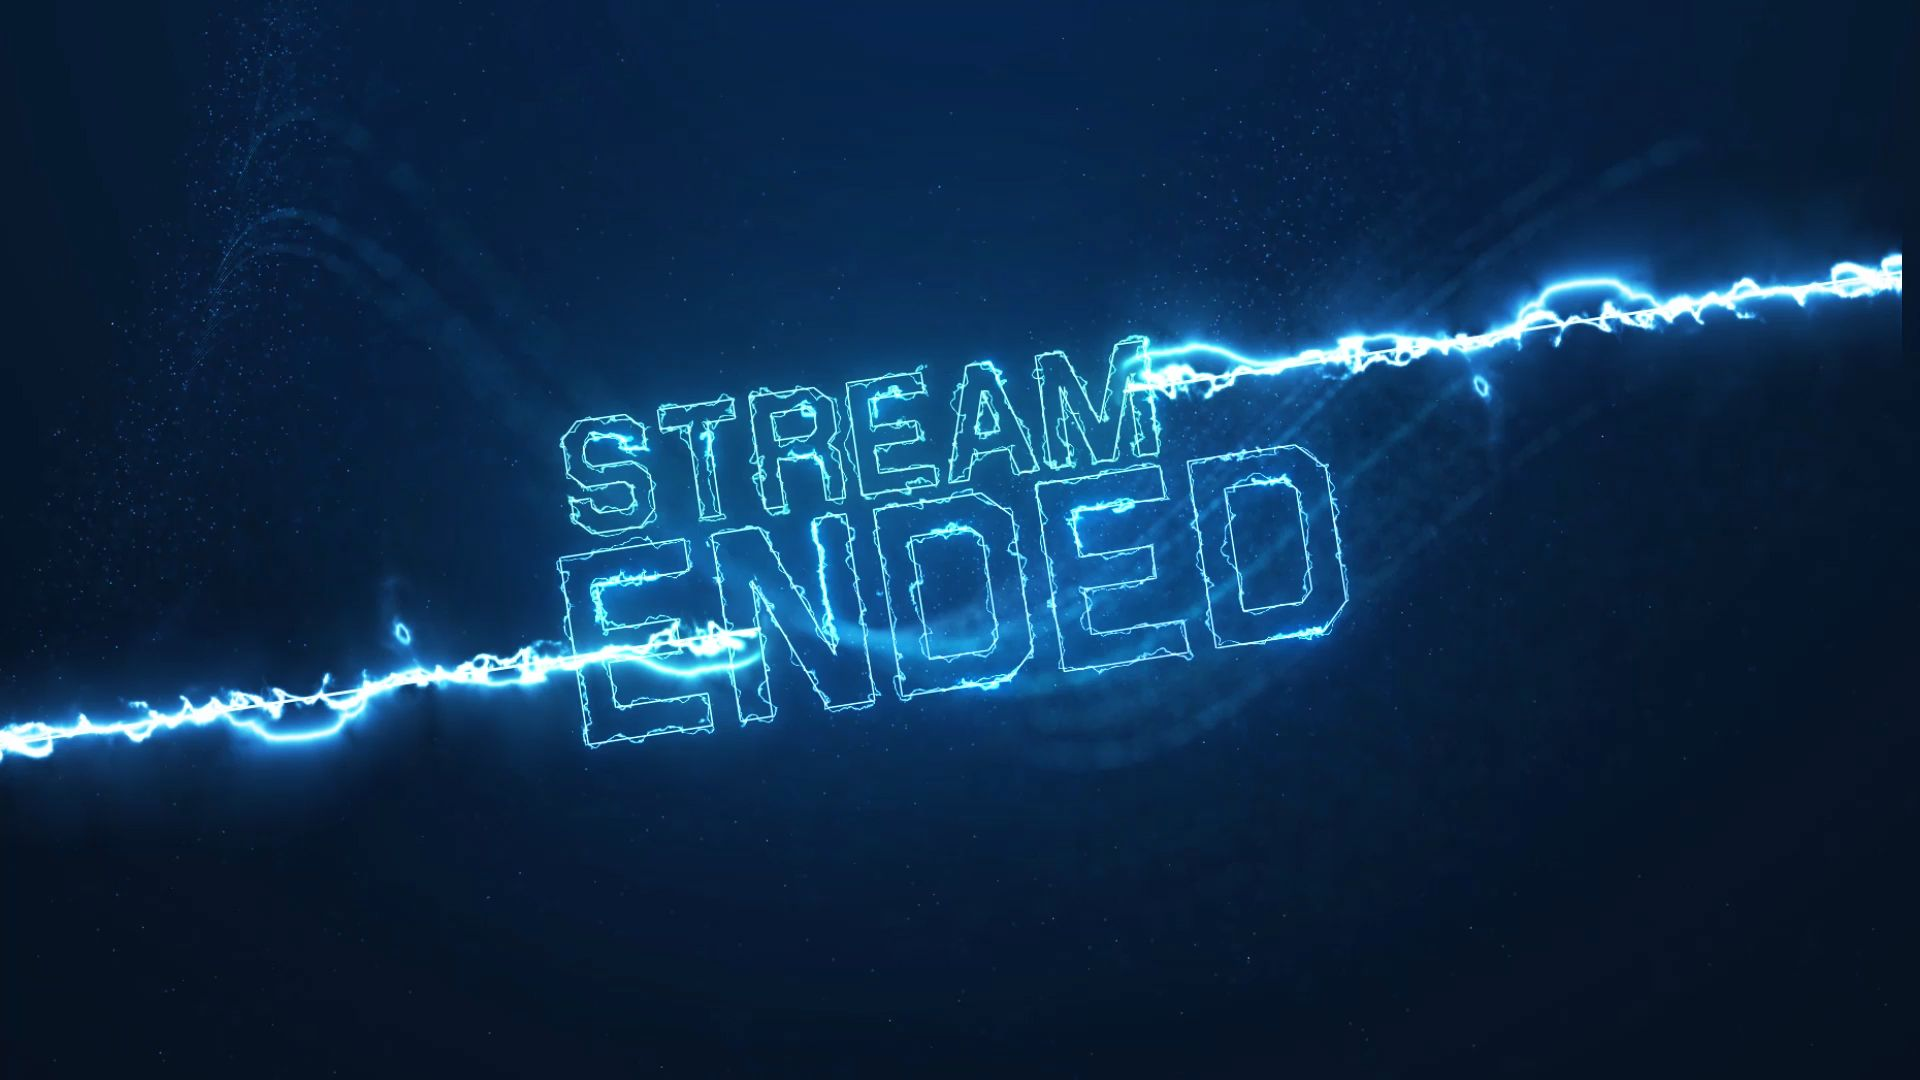 Electro animated stream scenes Animation, Overlays, Neon